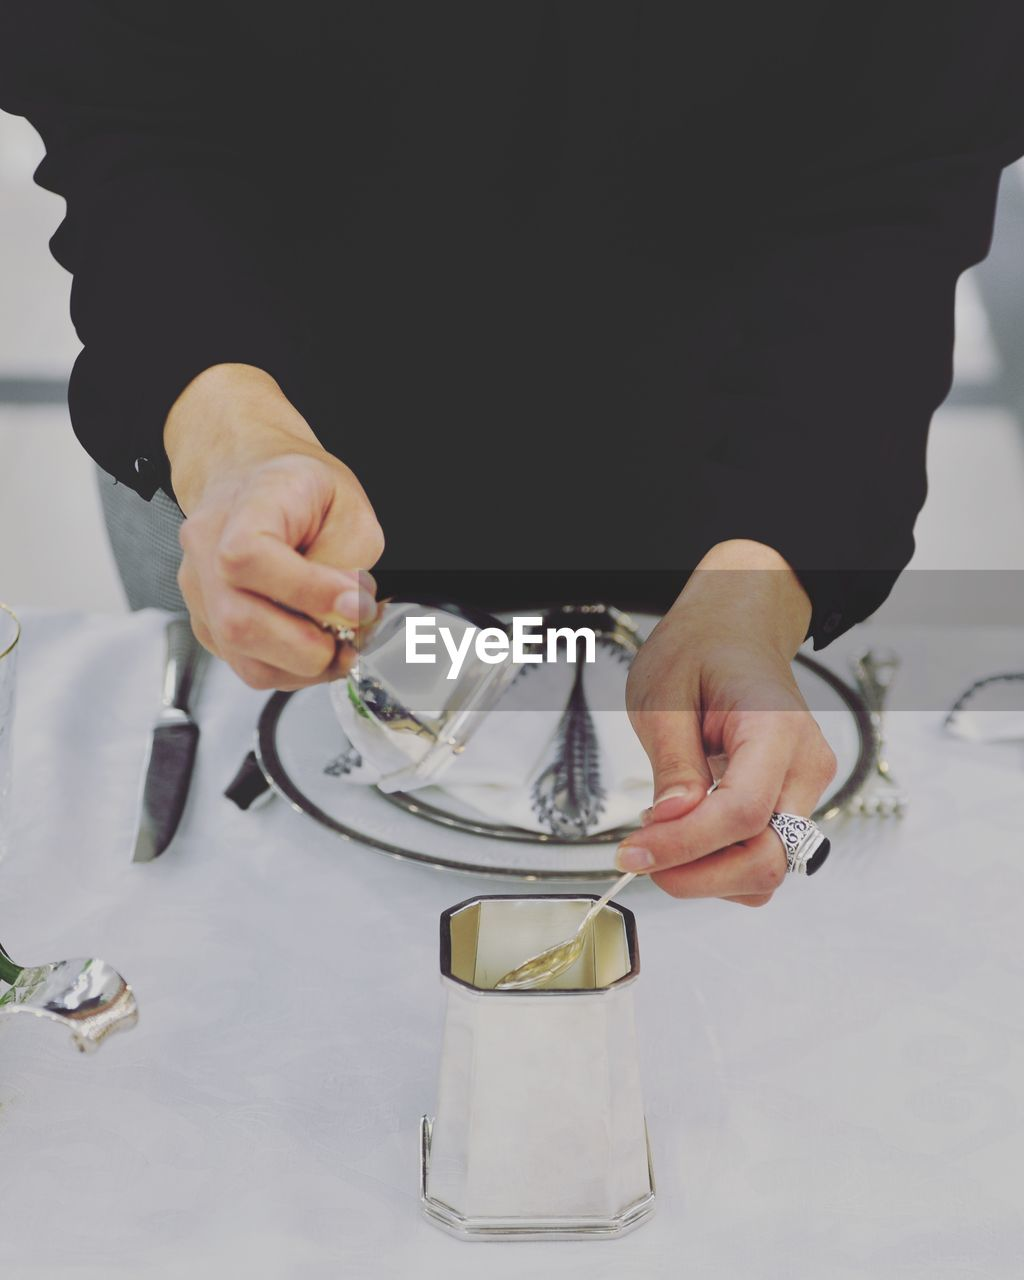 Midsection of person holding spoon in container on table